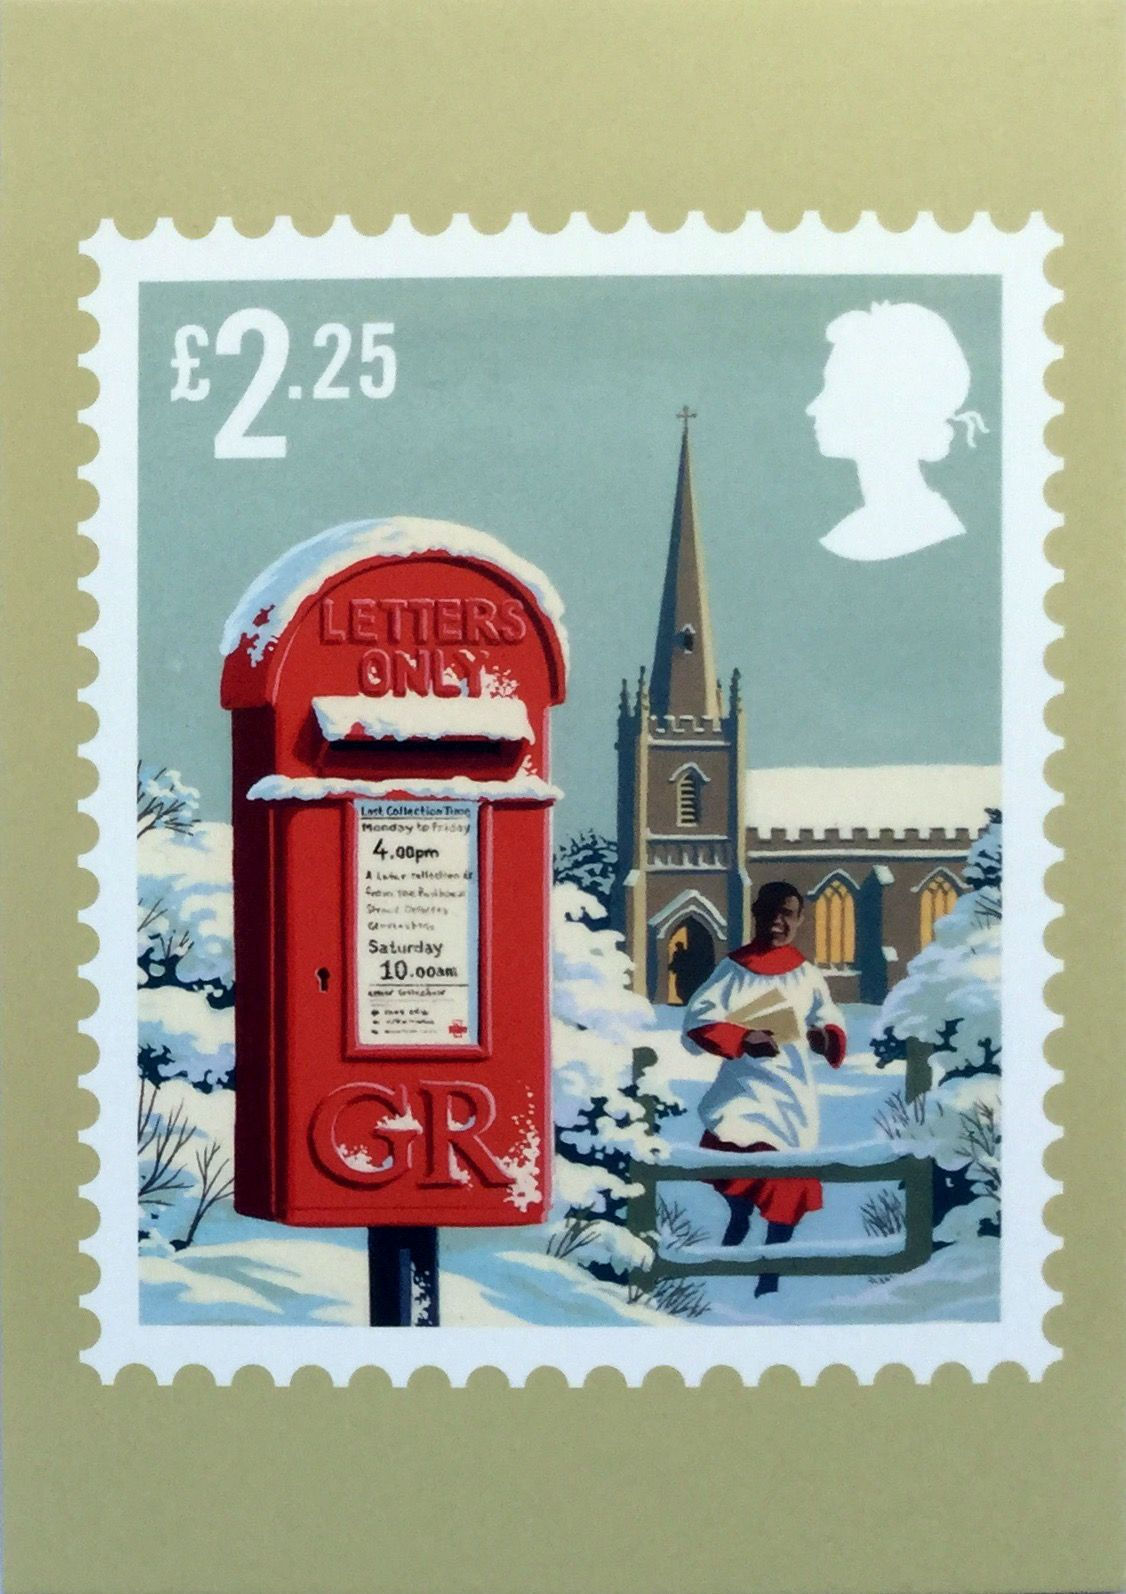 450(8). Issued 1 November 2018. Christmas Issue. Old